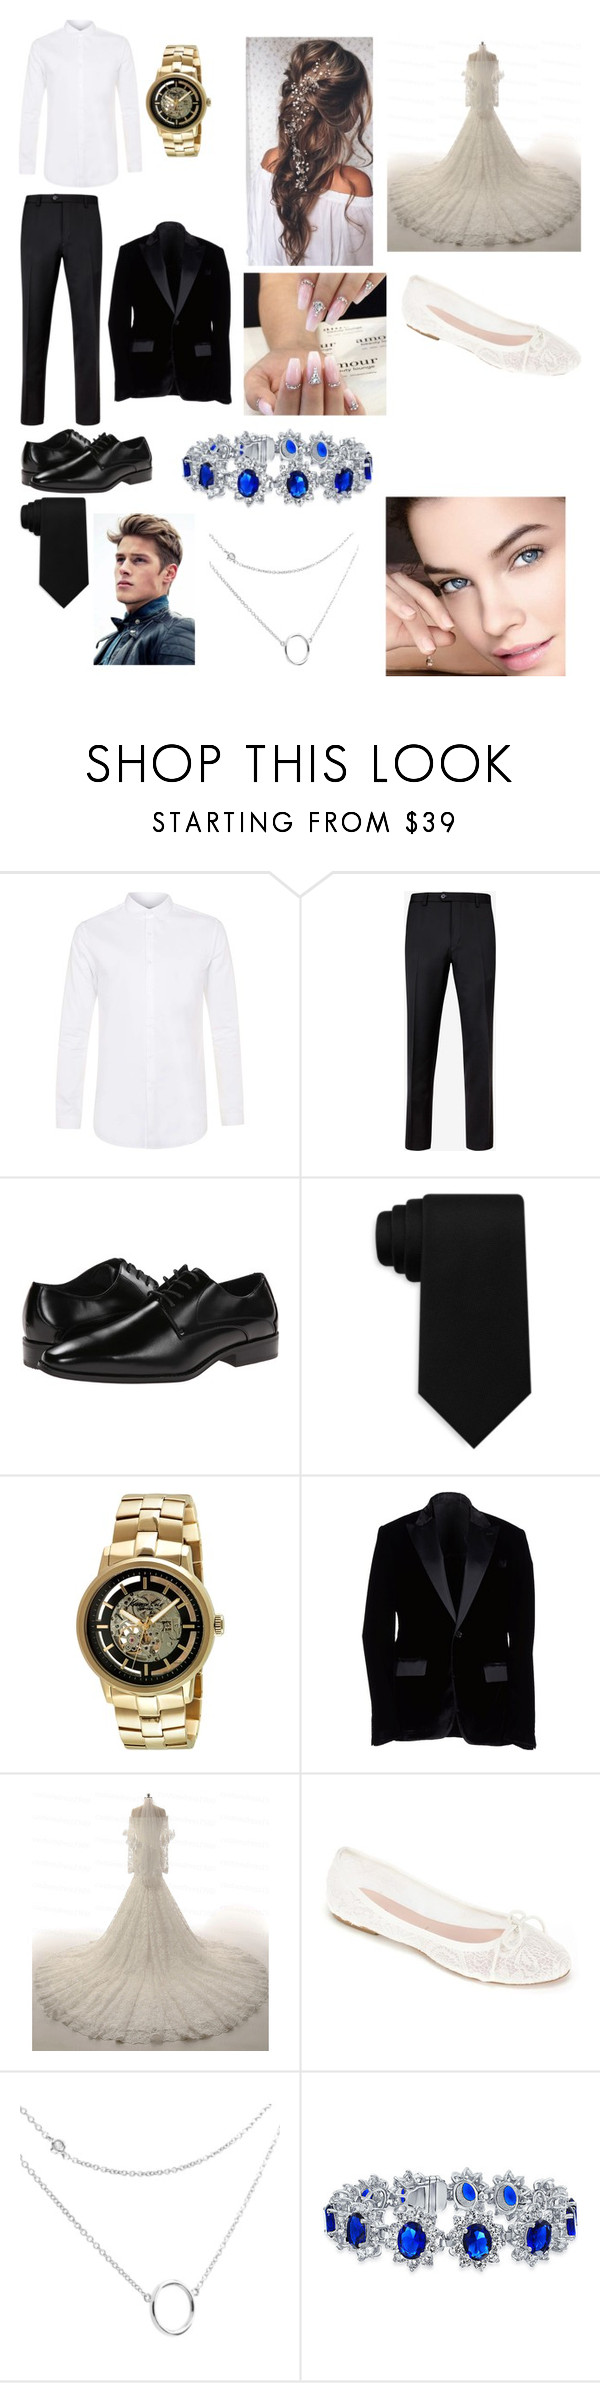 """For @alexiacaesar"" by mdbjanae on Polyvore featuring beauty, Topman, Ted Baker, Stacy Adams, Tommy Hilfiger, Kenneth Cole, Dirk Bikkembergs, Summit by White Mountain and Bling Jewelry"